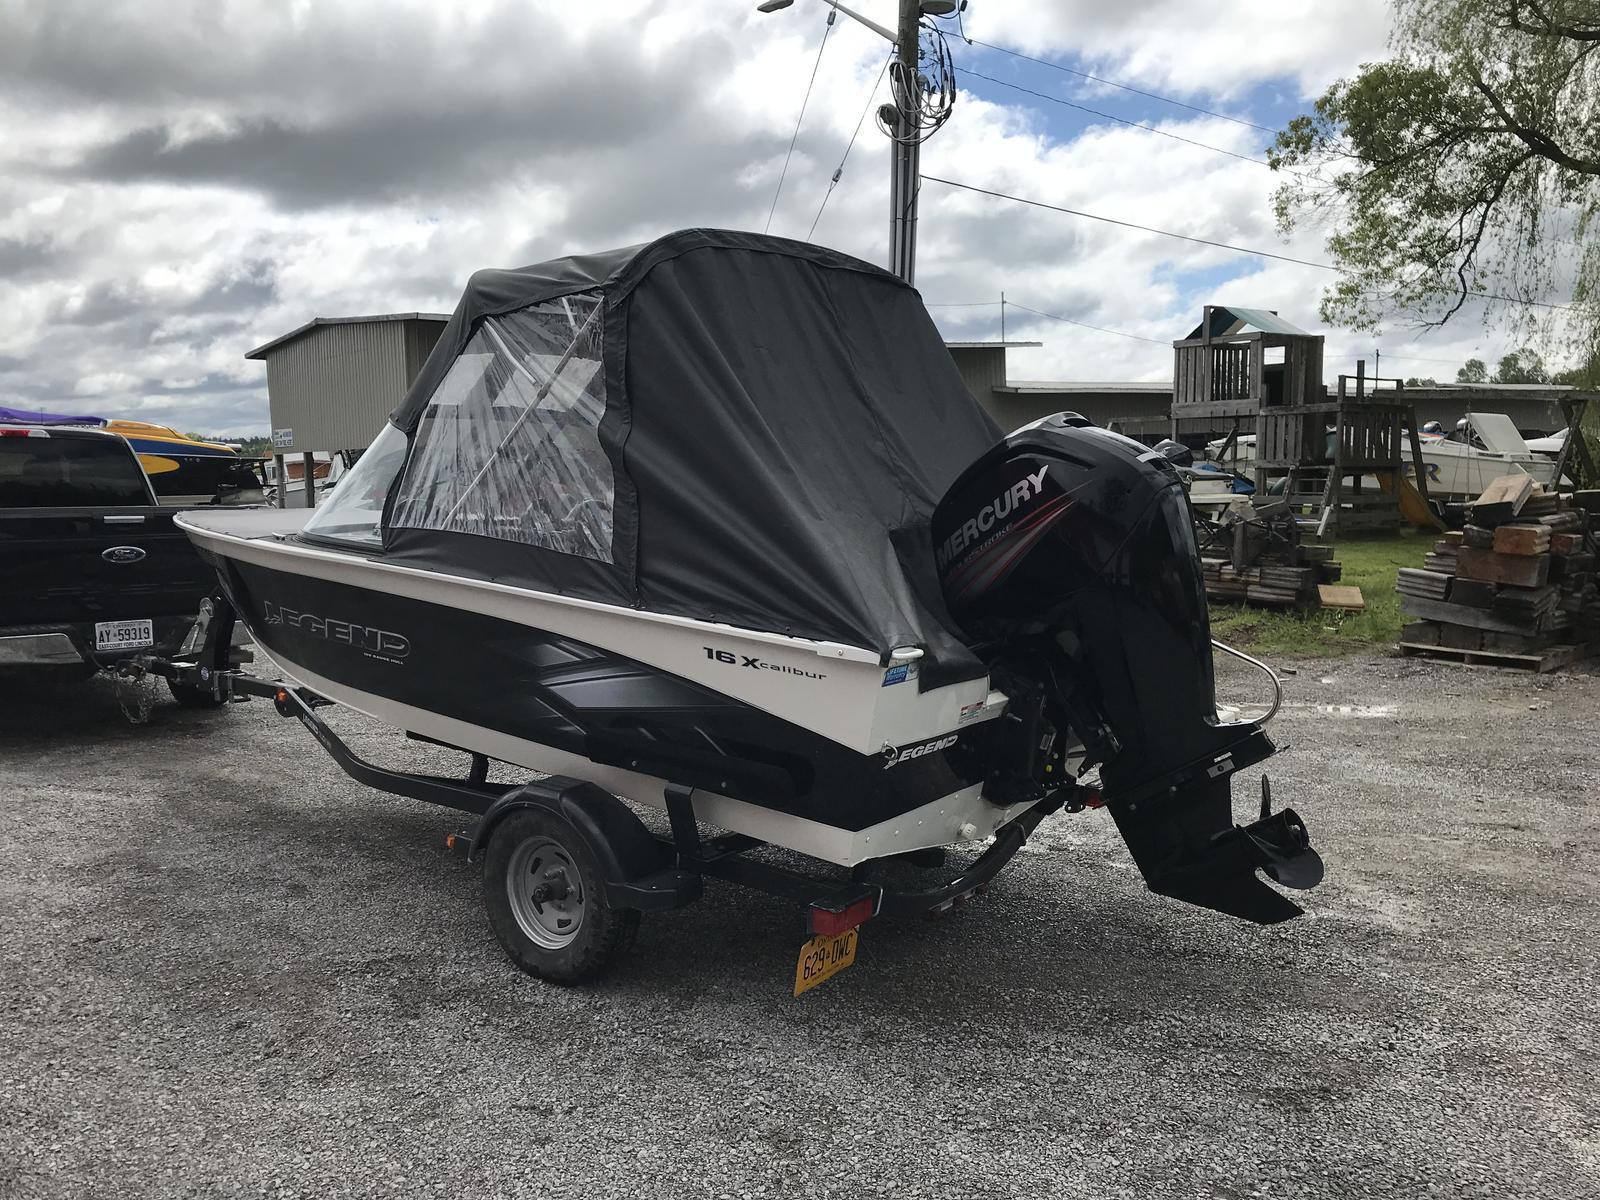 2015 Legend 16 Xcaliber For Sale In Bobcaygeon On Birch Point Marina Bobcaygeon On 705 738 2473